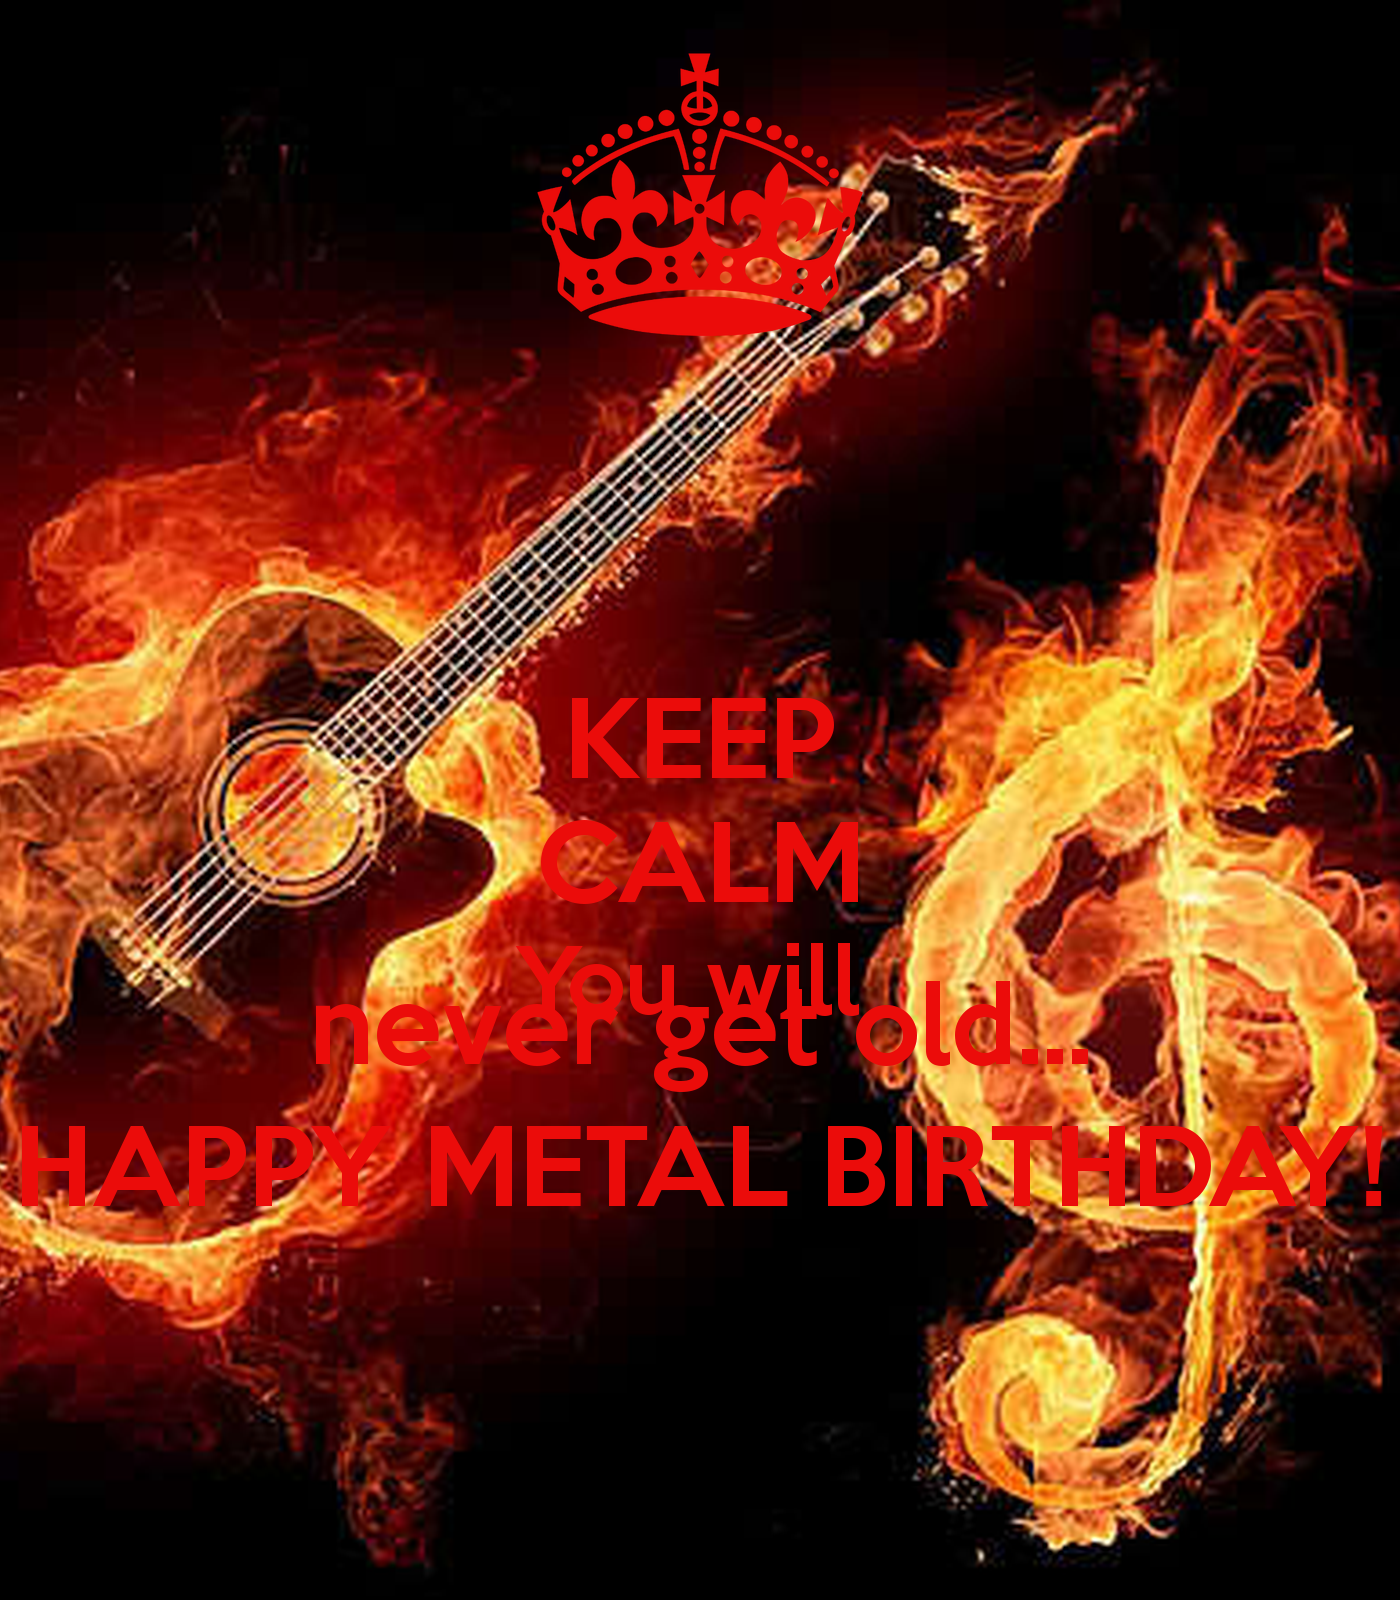 Pin By Summer Moon On Happy Birthday Pinterest Heavy Metal